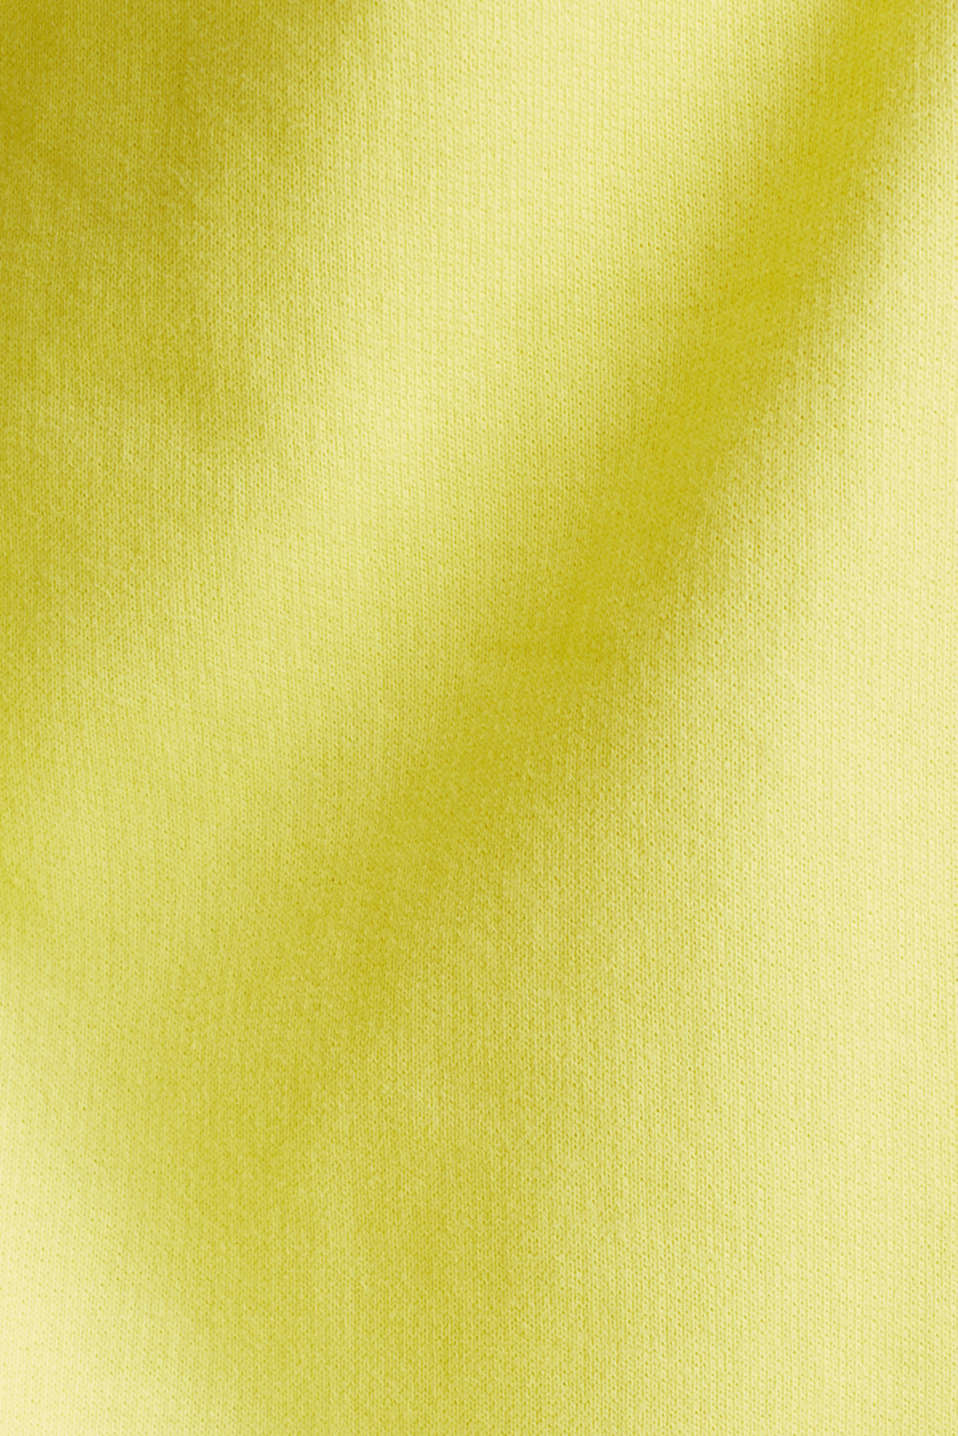 Sweatshirt with a back neckline, BRIGHT YELLOW, detail image number 4